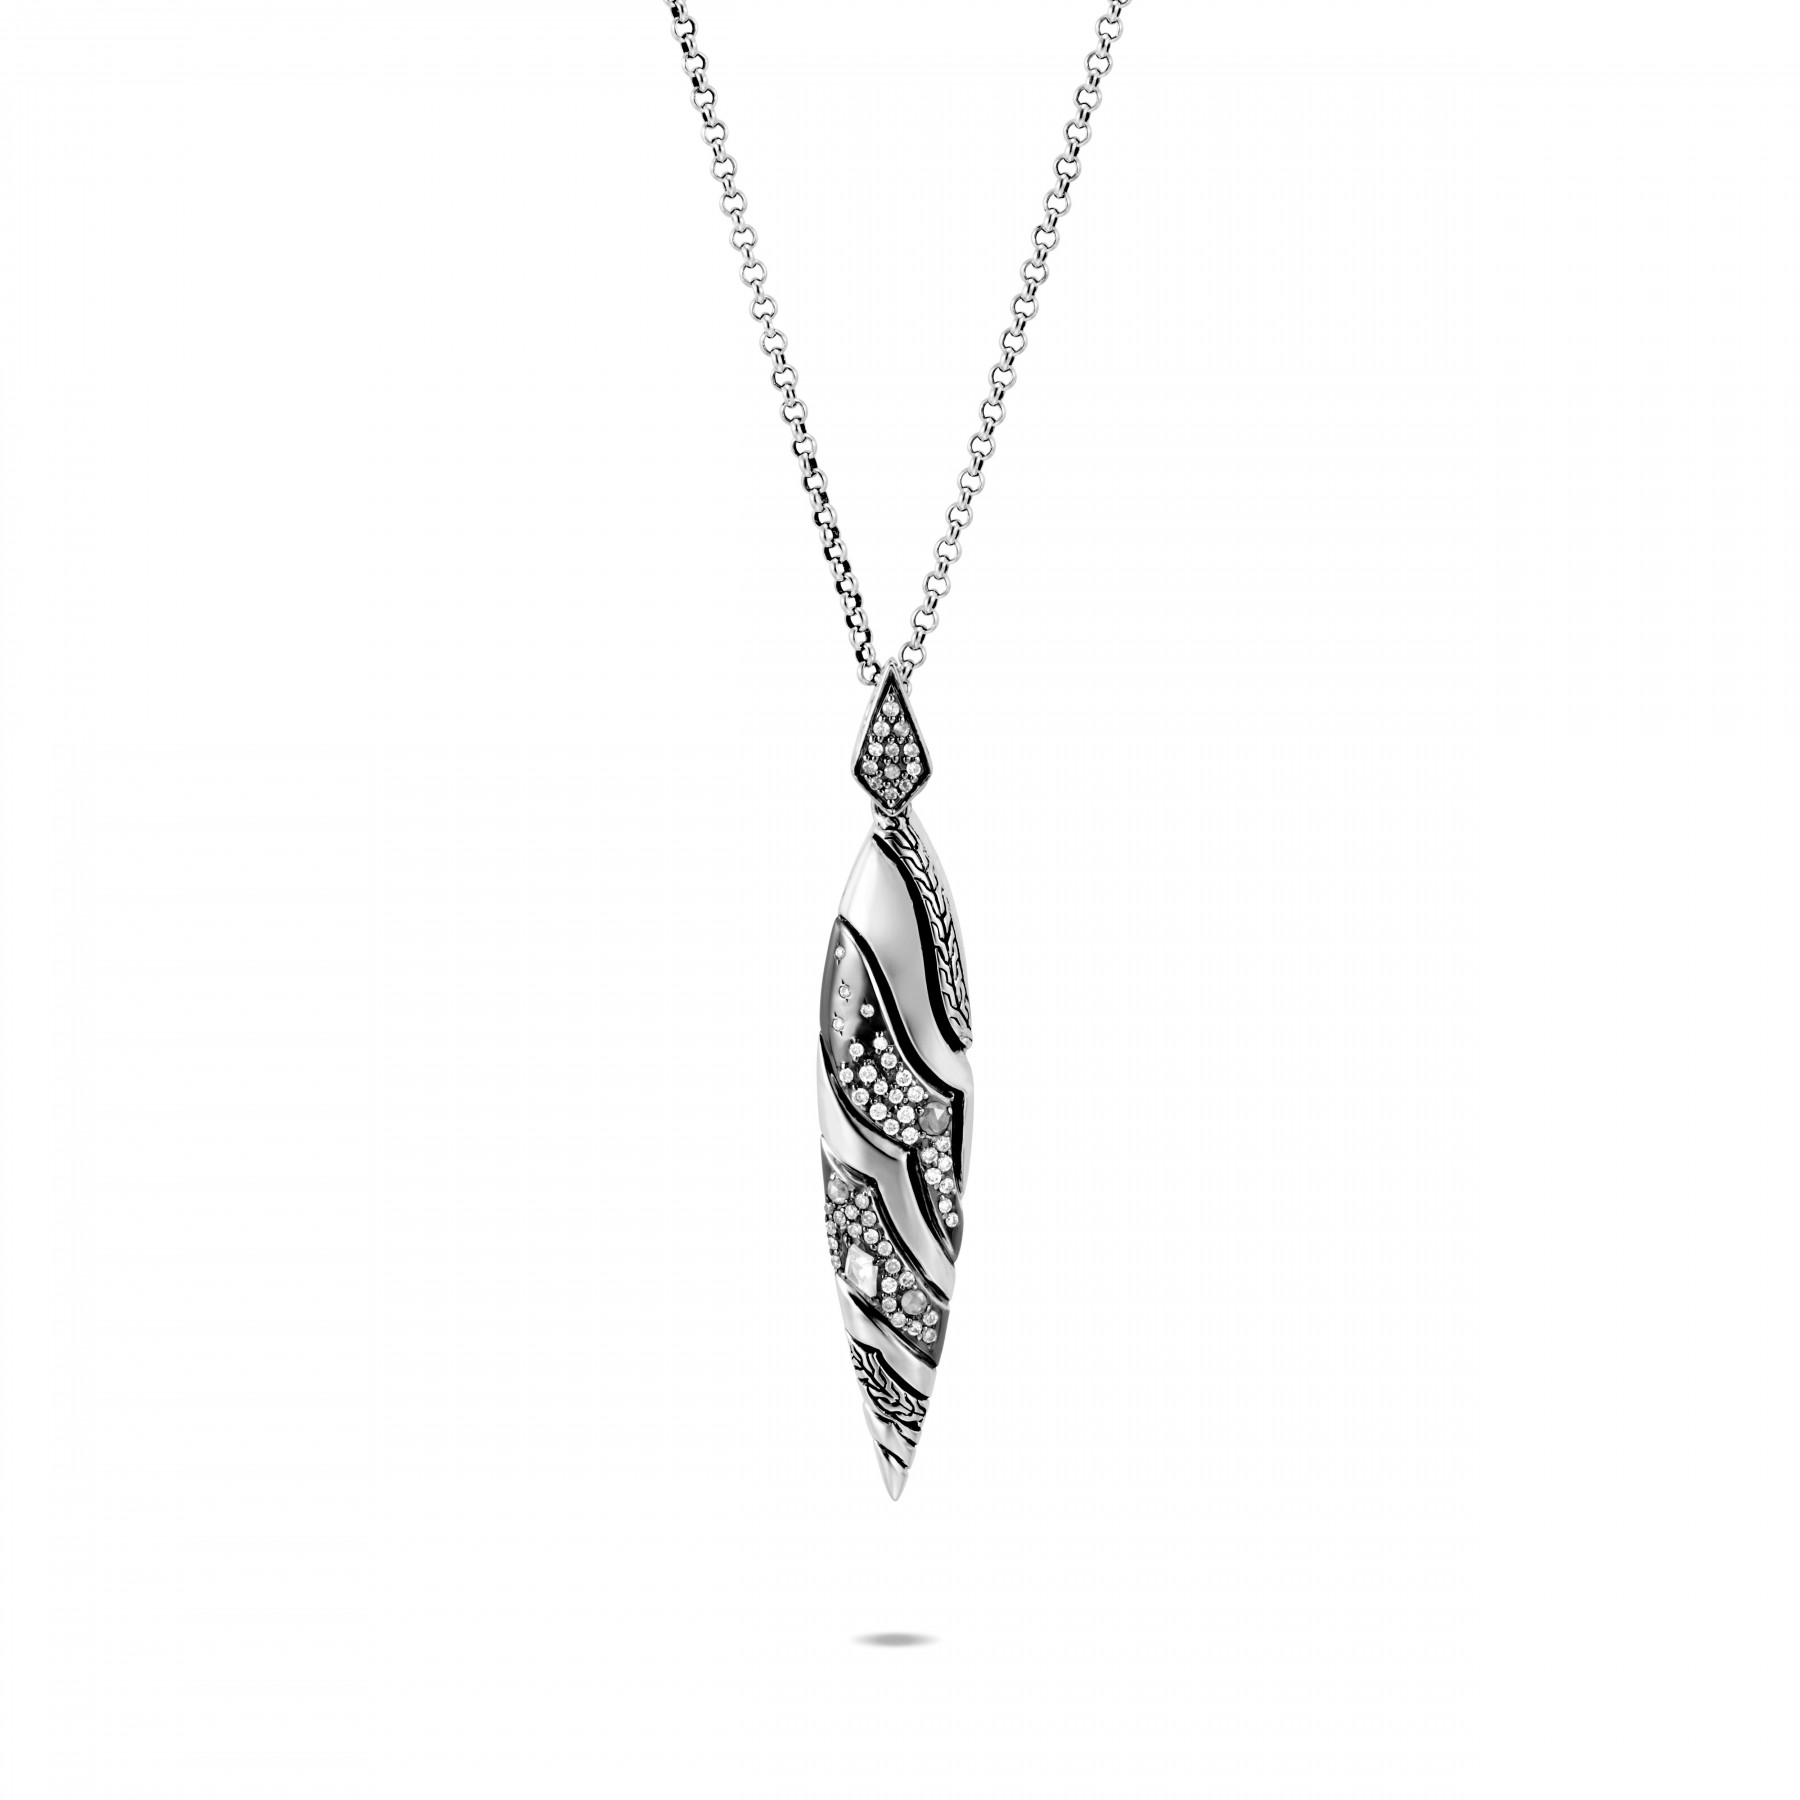 John Hardy White and Grey Diamond Drop Necklace full view